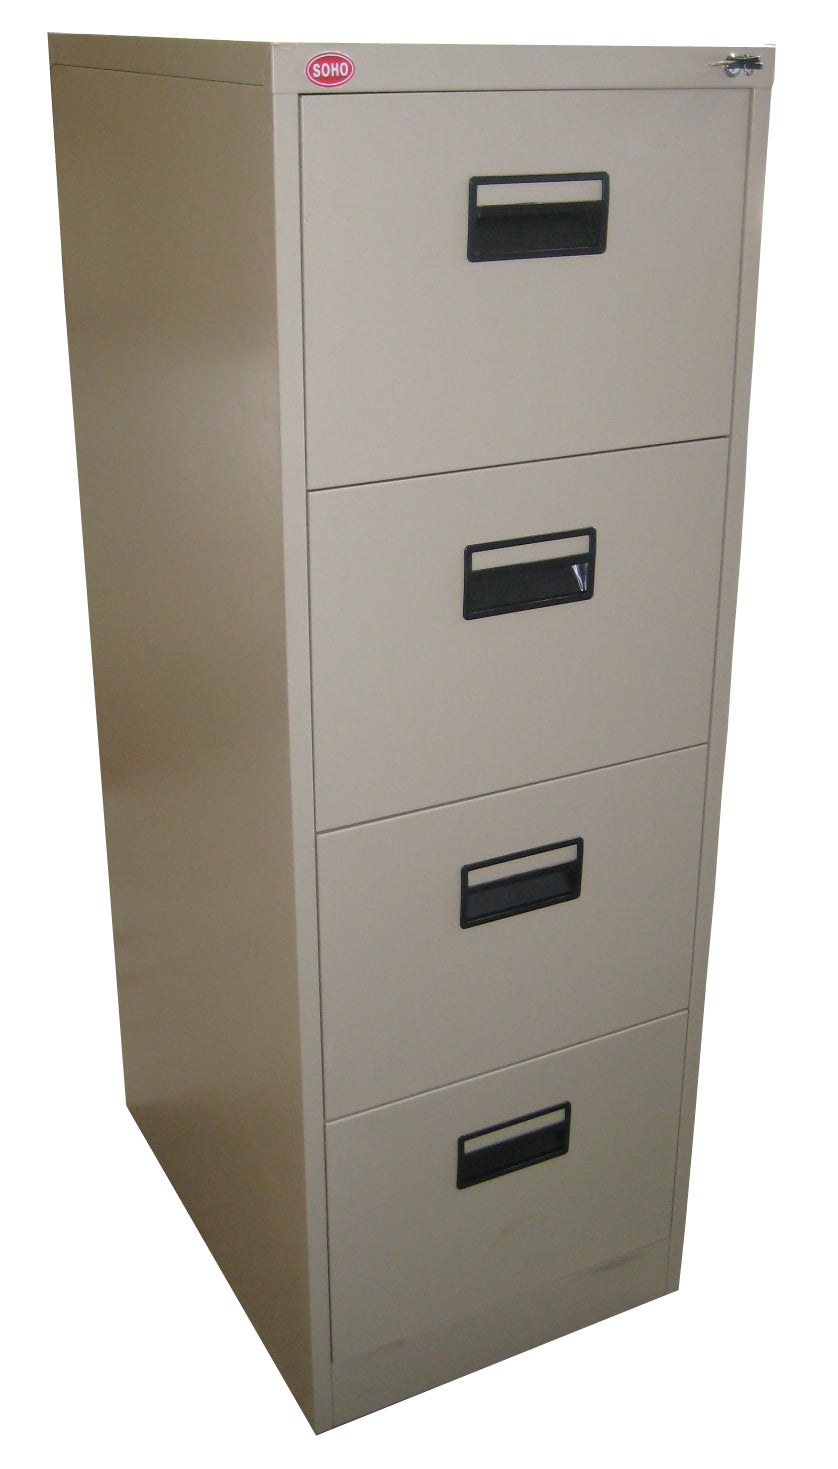 SWITZERLAND 4 Vertical Filing Cabinet w/ Plastic Divider & Central Lock